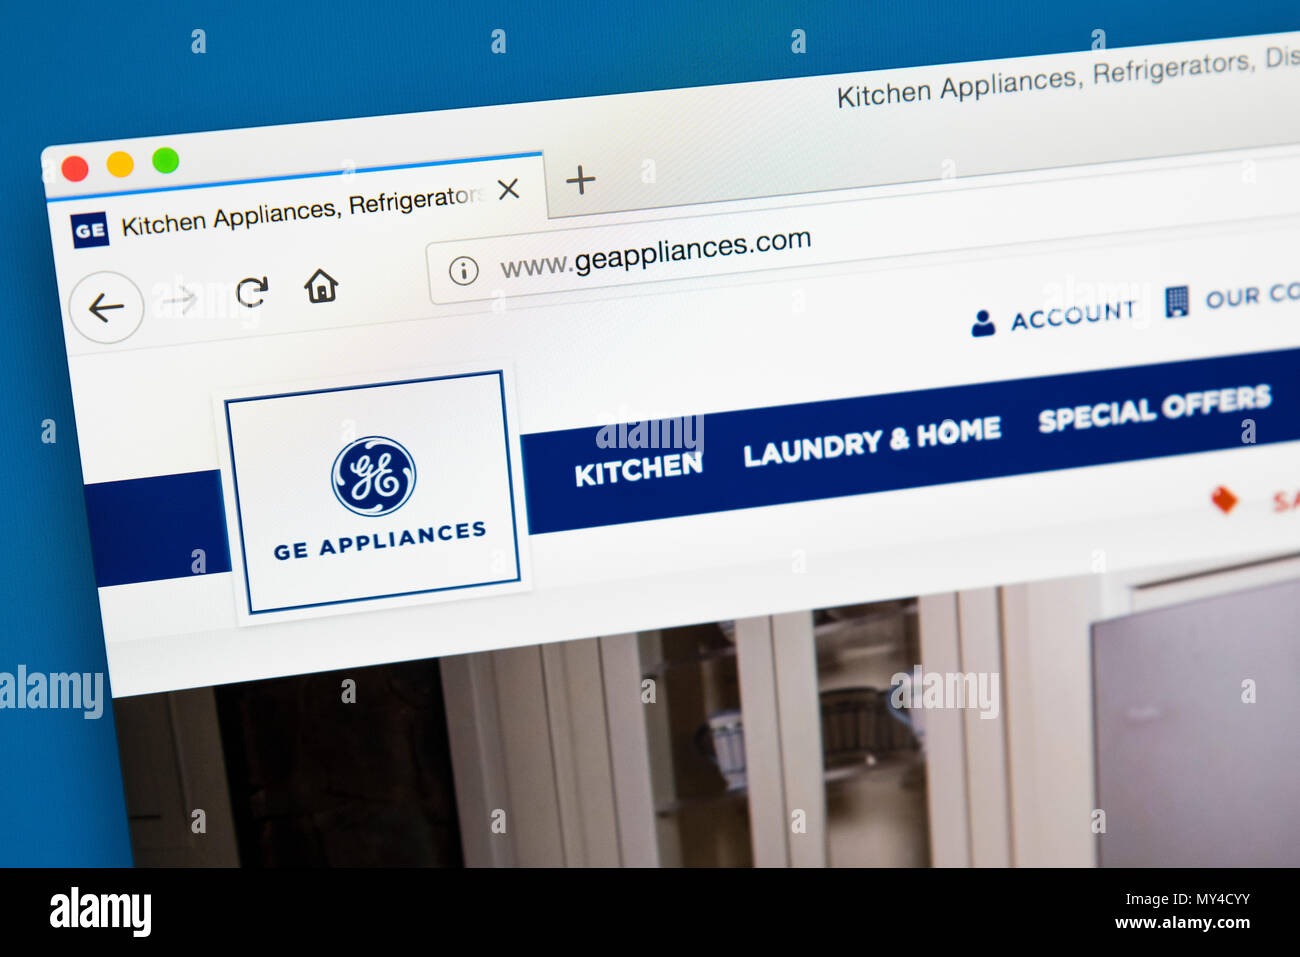 LONDON, UK - MAY 29TH 2018: The homepage of the official website for on westinghouse kitchen appliances, amana kitchen appliances, scotsman kitchen appliances, daewoo kitchen appliances, kelvinator kitchen appliances, sylvania kitchen appliances, electrolux kitchen appliances, jenn-air kitchen appliances, thermador kitchen appliances, roper kitchen appliances, samsung kitchen appliances, mitsubishi kitchen appliances, fujitsu kitchen appliances, sharp kitchen appliances, general electric kitchen appliances, liebherr kitchen appliances, sunbeam kitchen appliances, emerson kitchen appliances, kitchenaid kitchen appliances, frigidaire kitchen appliances,